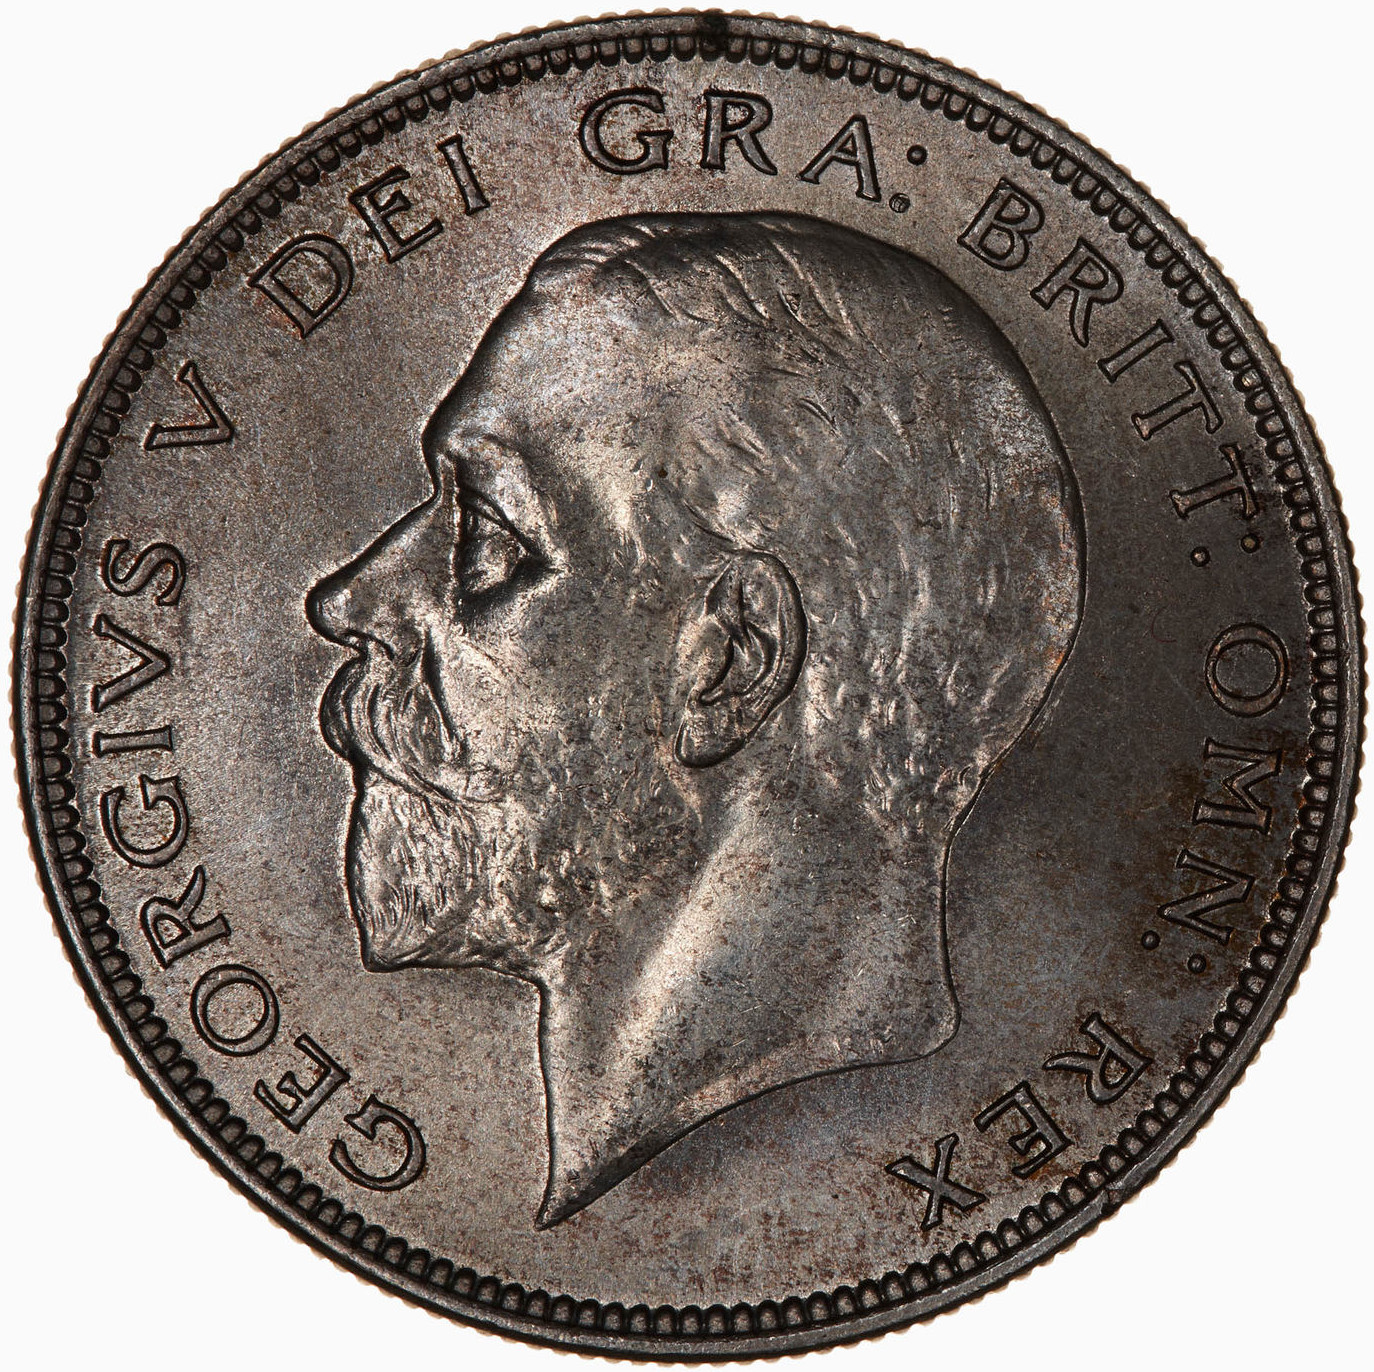 Halfcrown 1936: Photo Coin - Halfcrown, George V, Great Britain, 1936